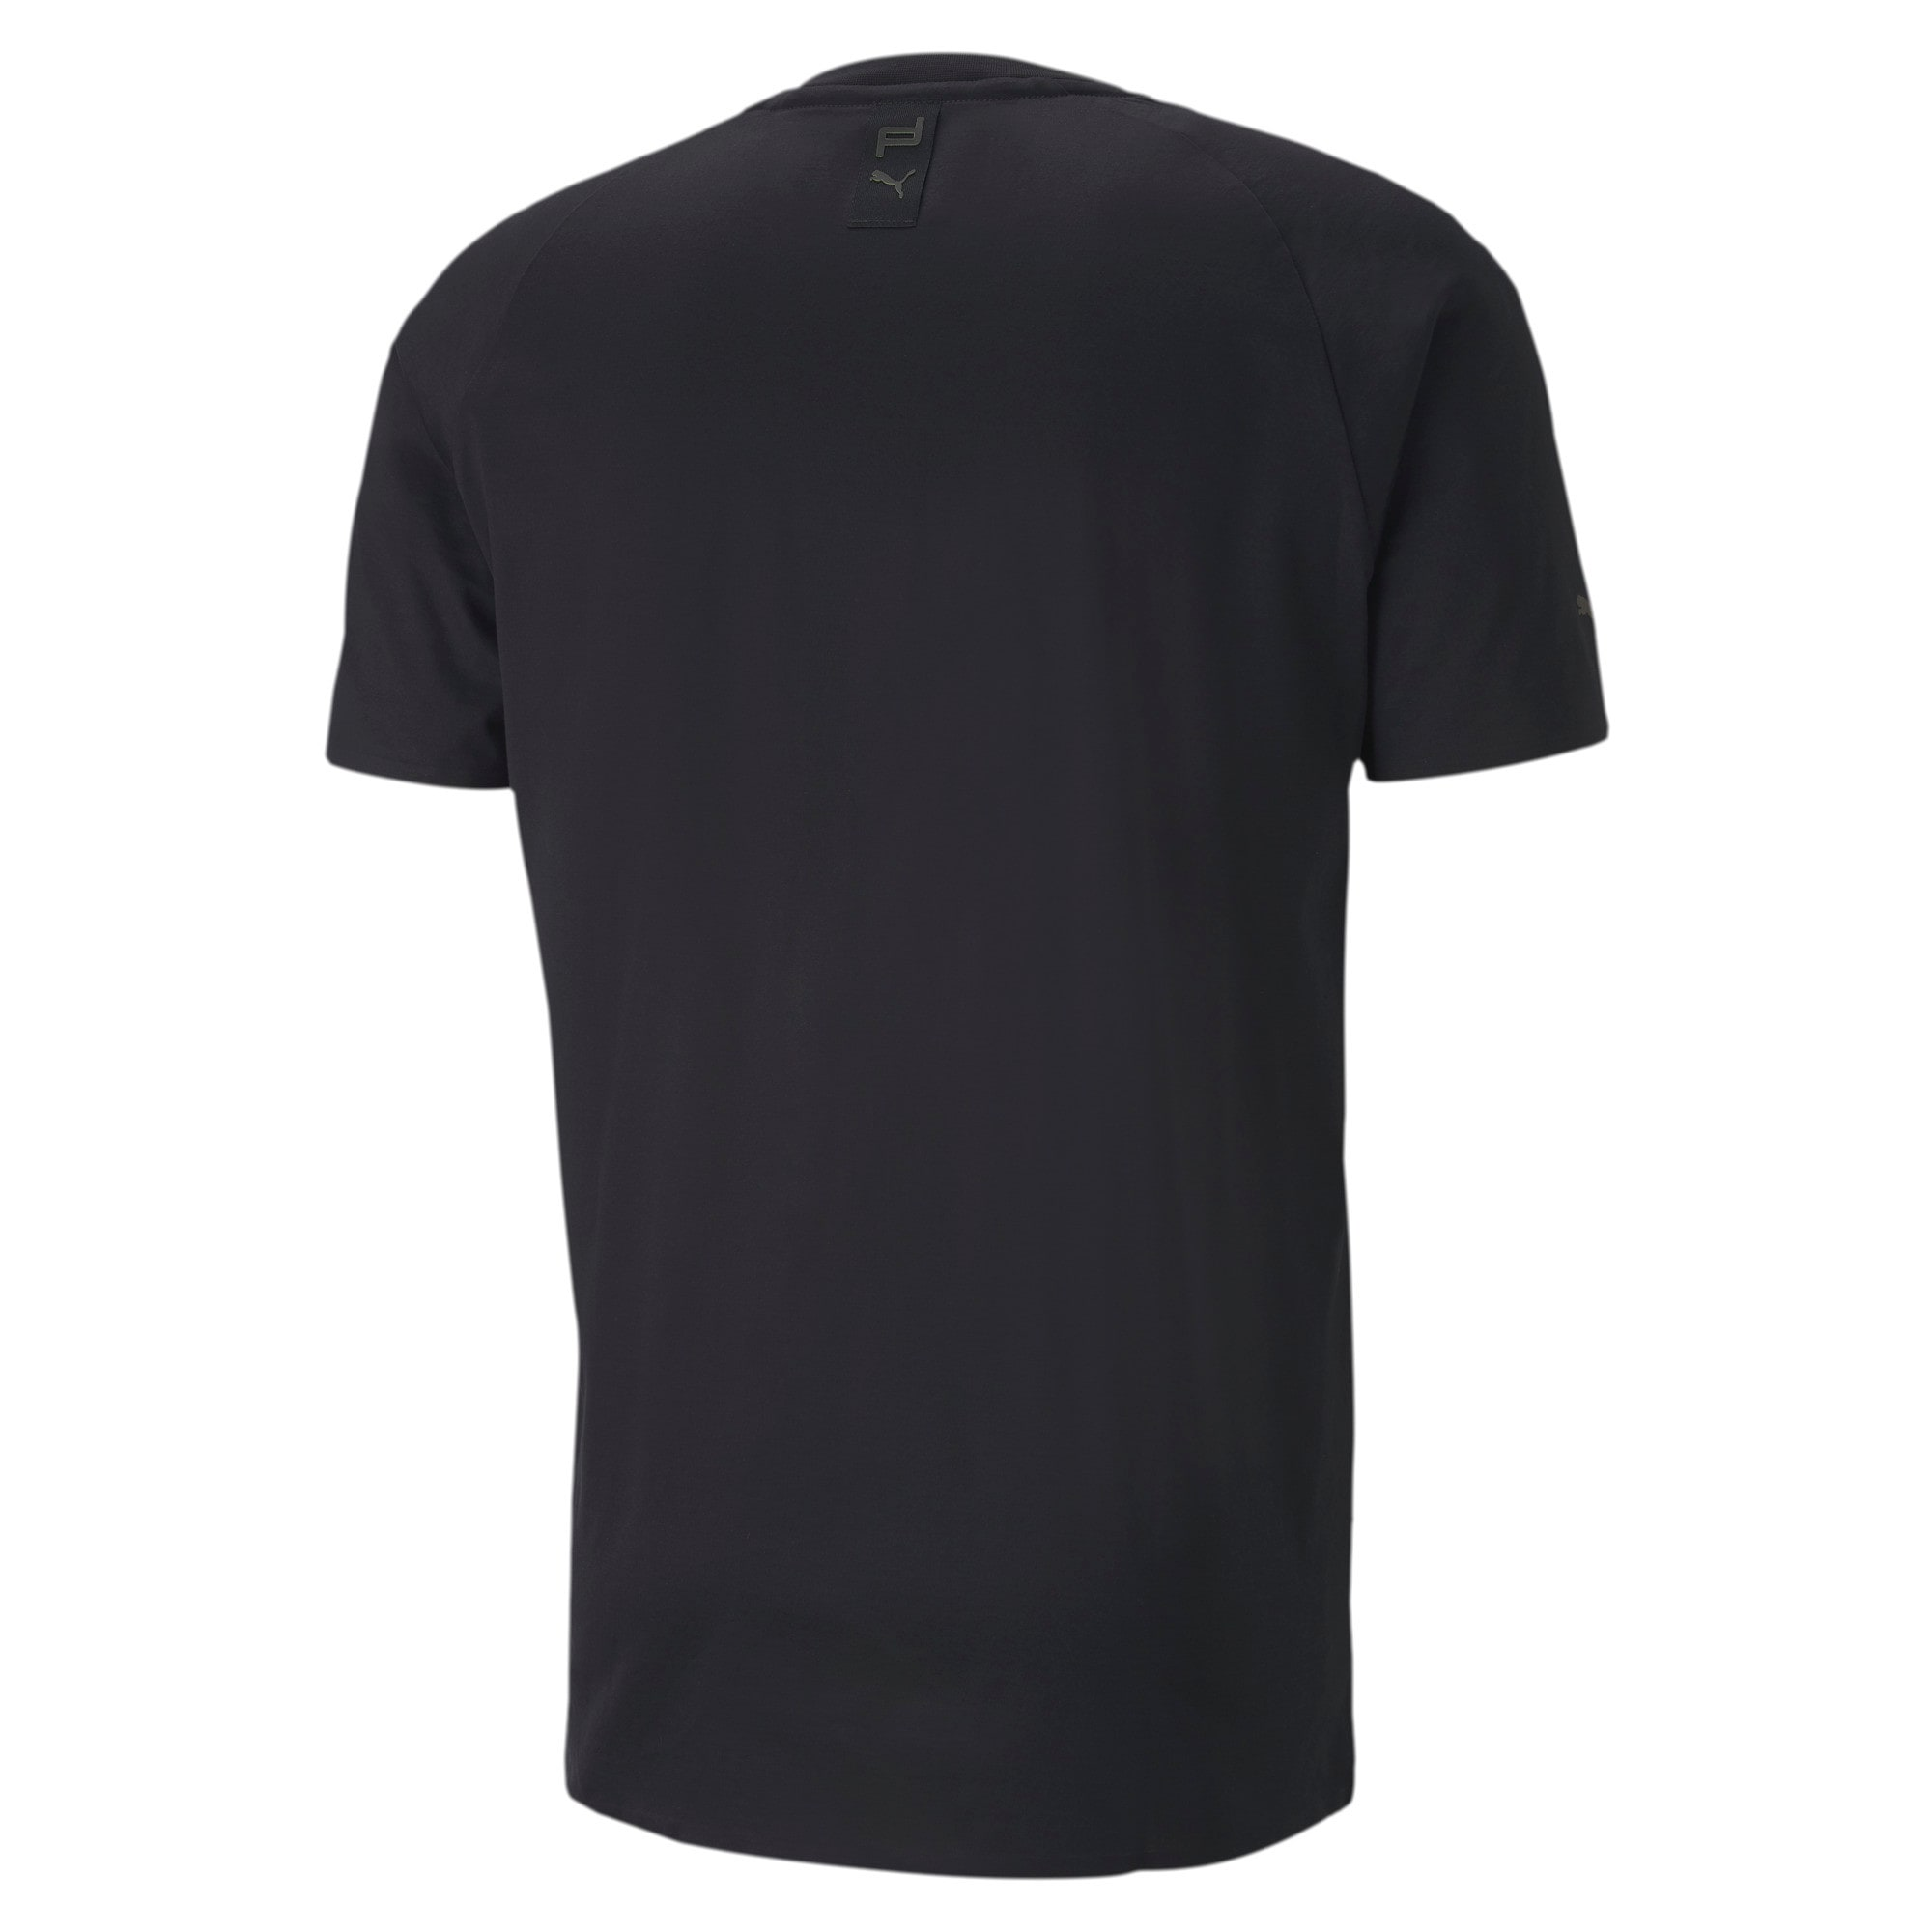 Thumbnail 5 of Porsche Design Men's Essential Tee, Jet Black, medium